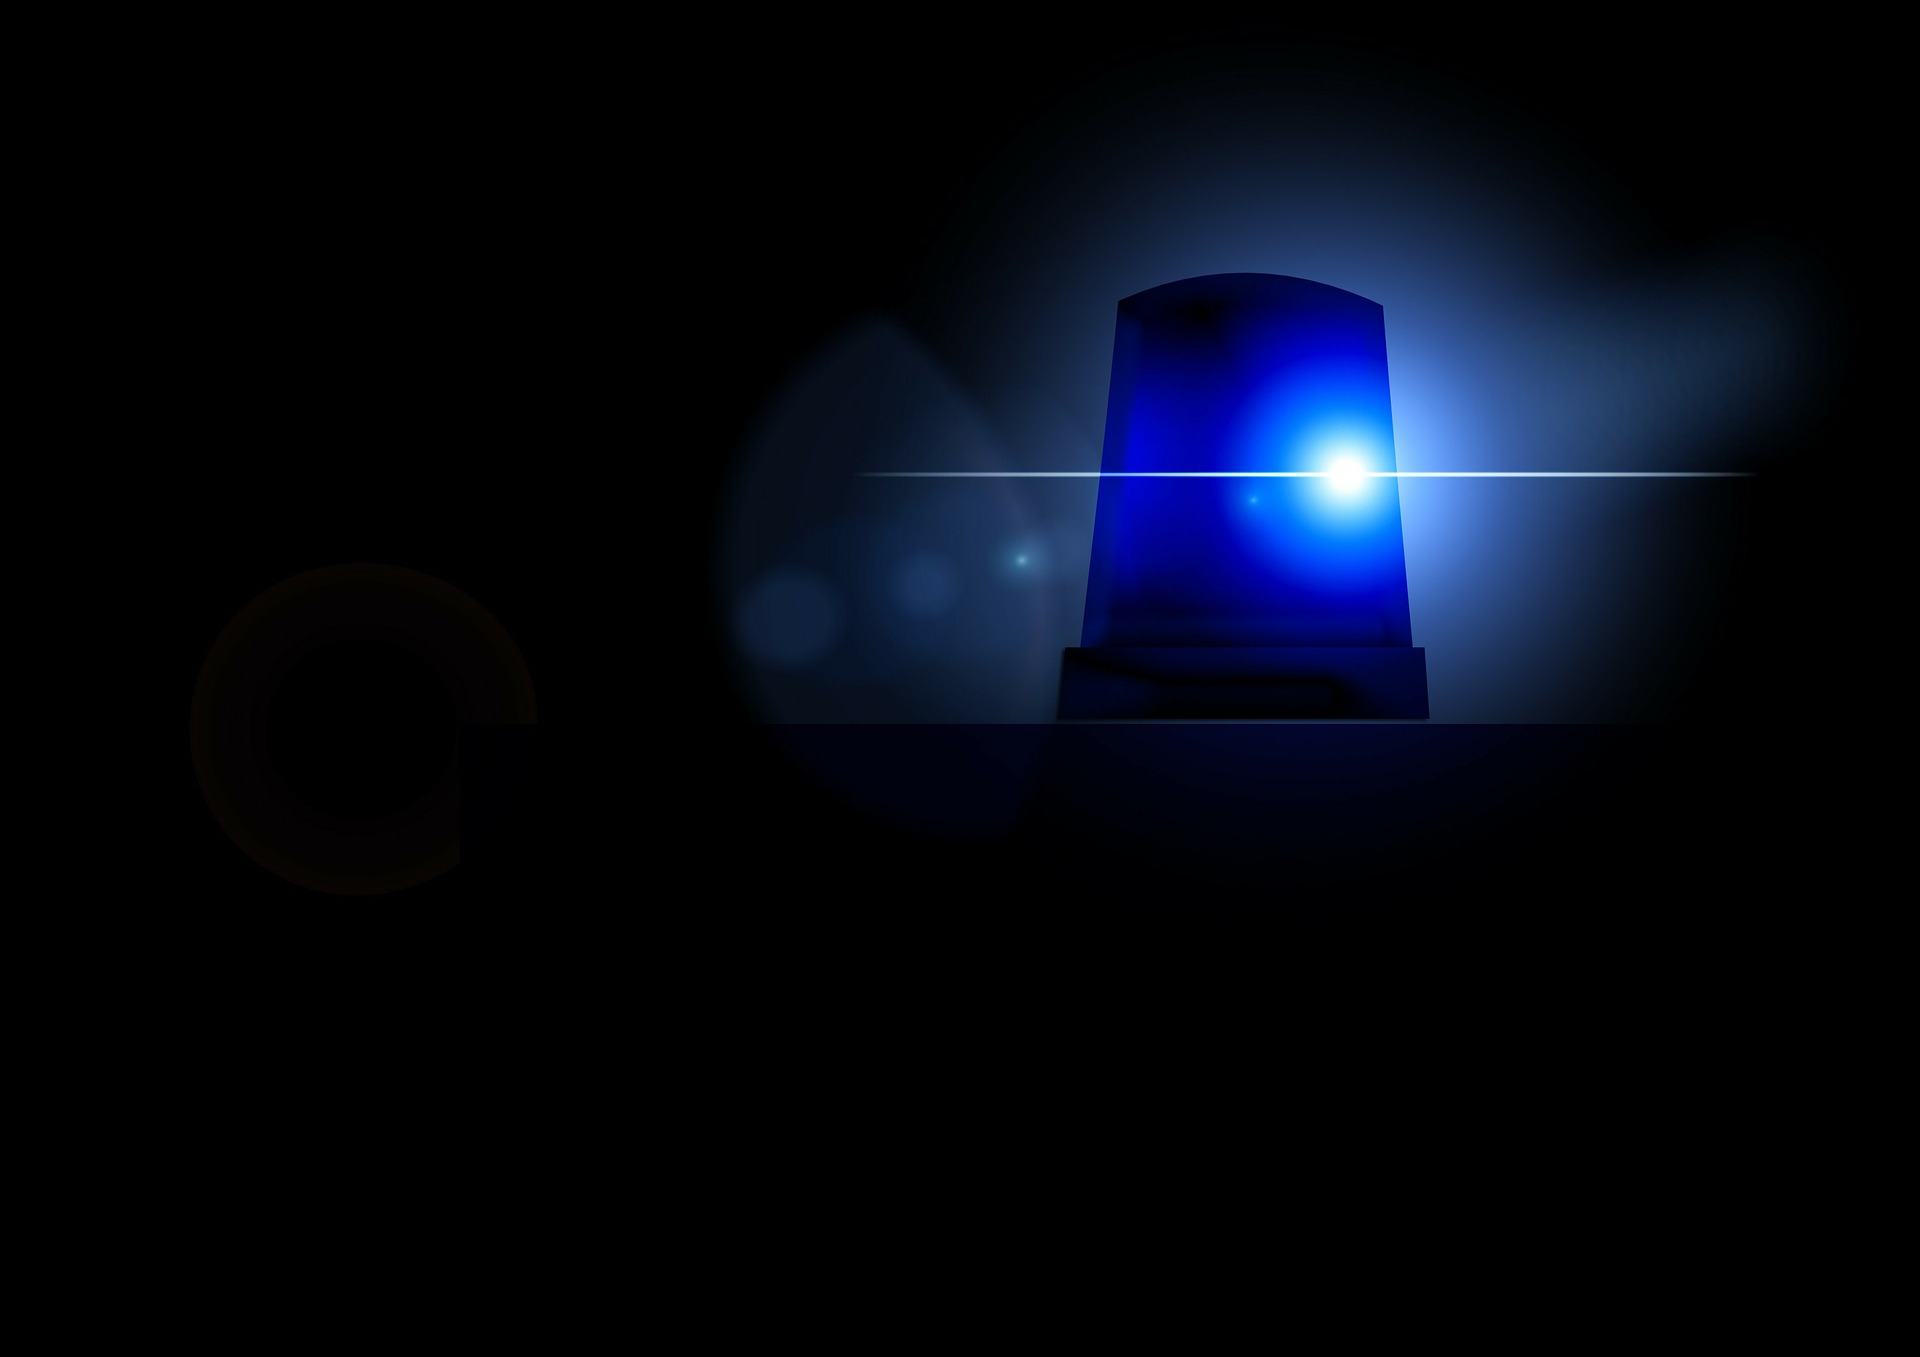 Blue lights for emergency vehicles in Spain